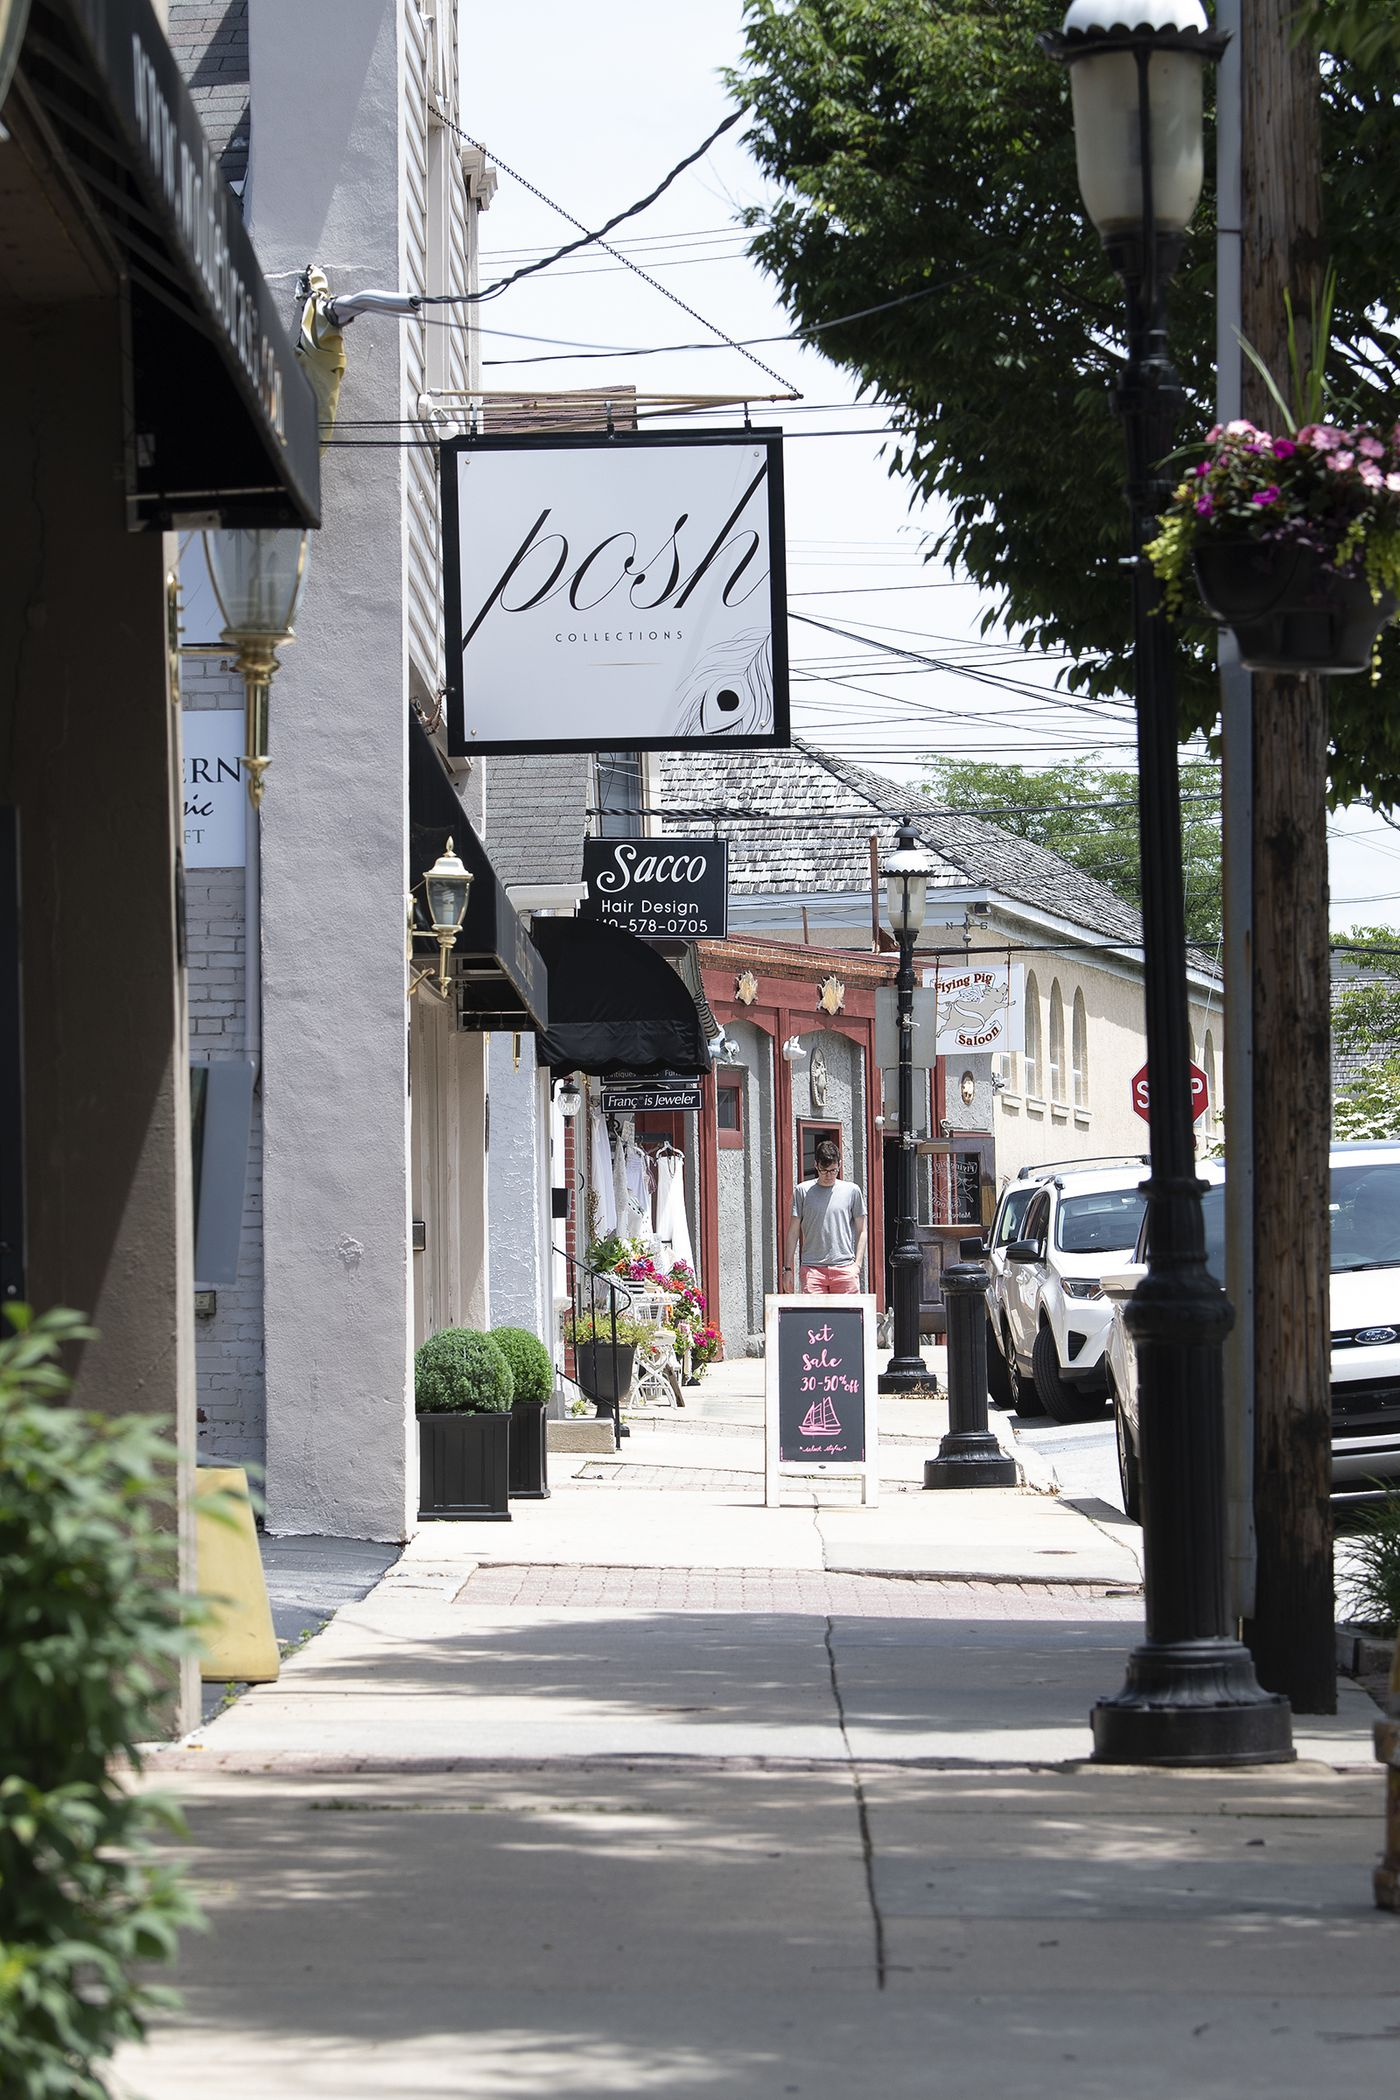 Residents praise the juxtaposition of old and new on Malvern's King Street.